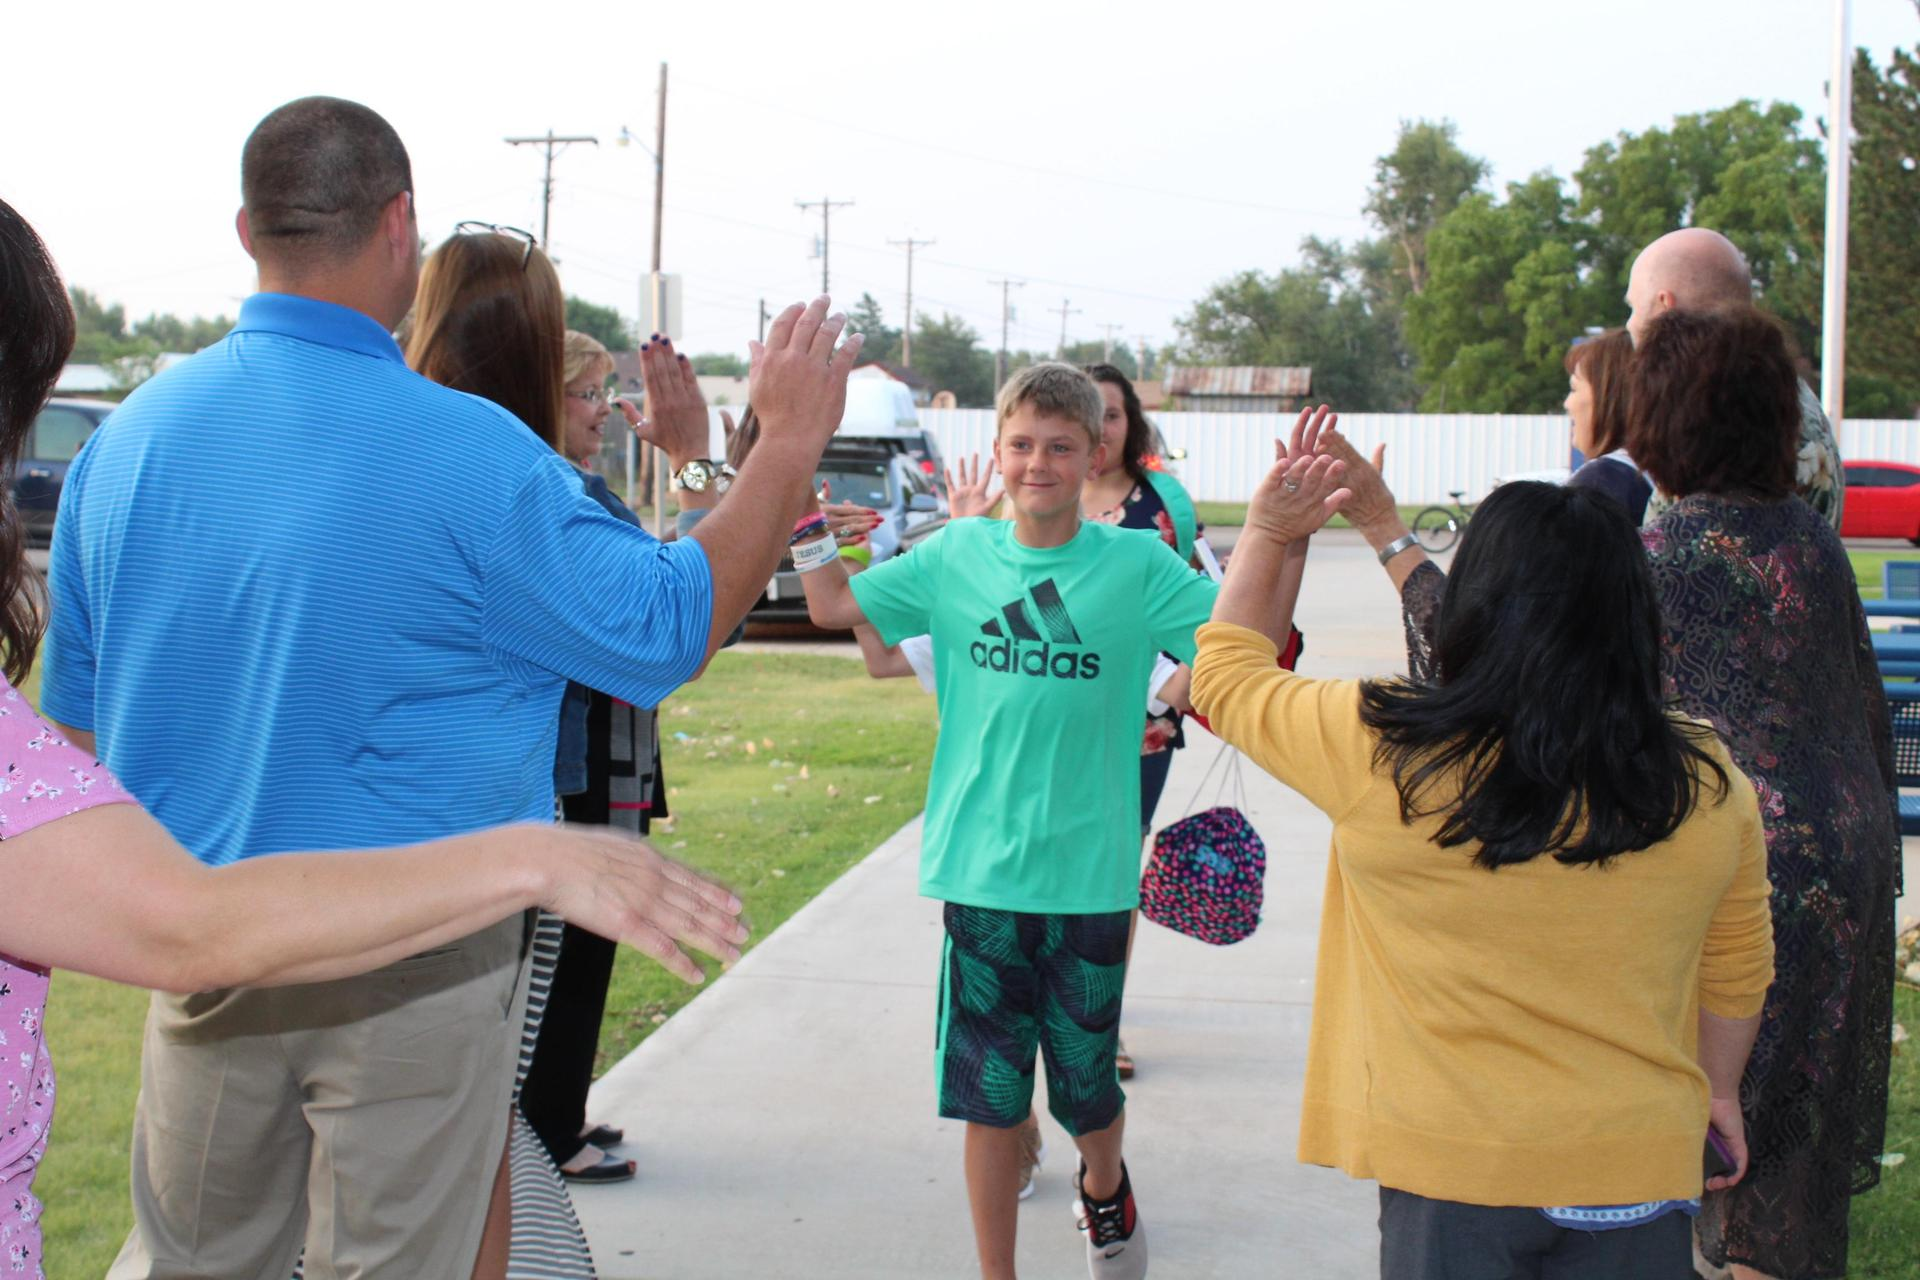 Student walking into the school on the first day greeted by several teachers